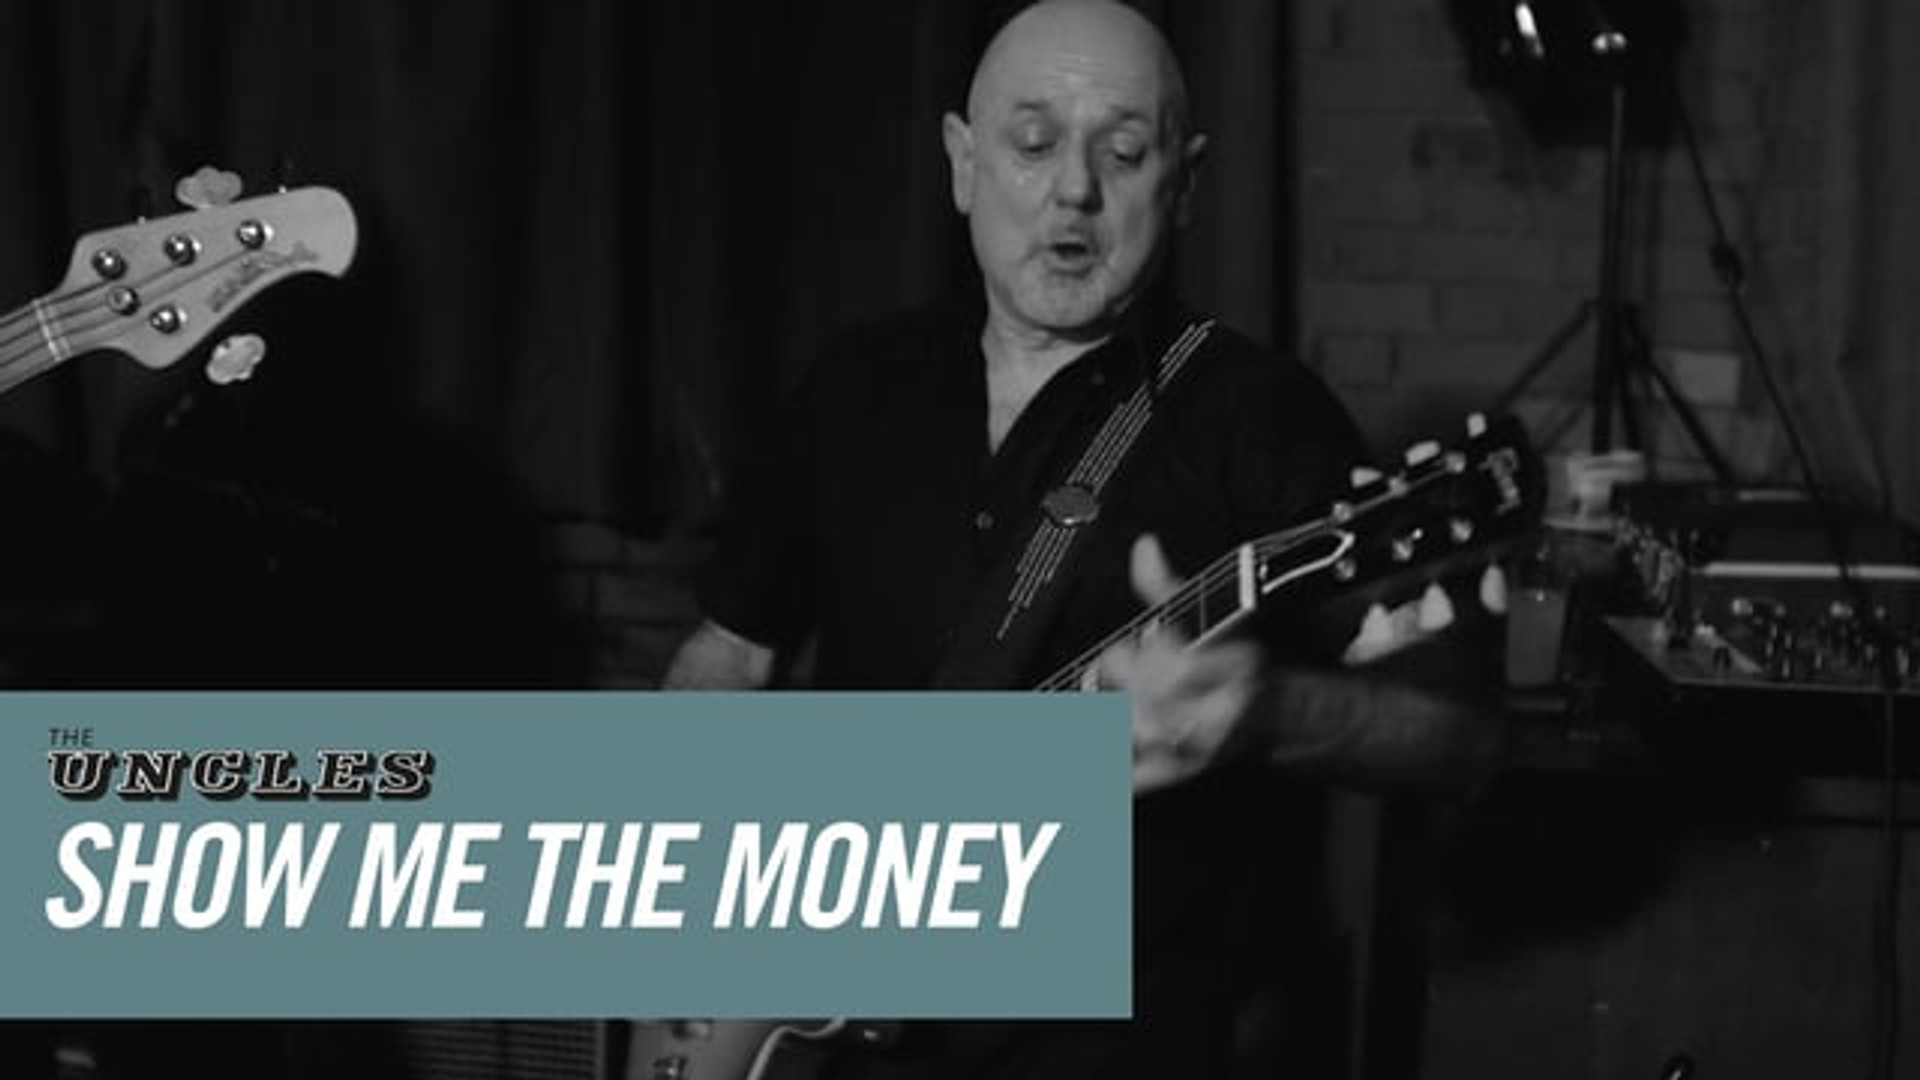 Show Me The Money - The Uncles, live at the Green Bank